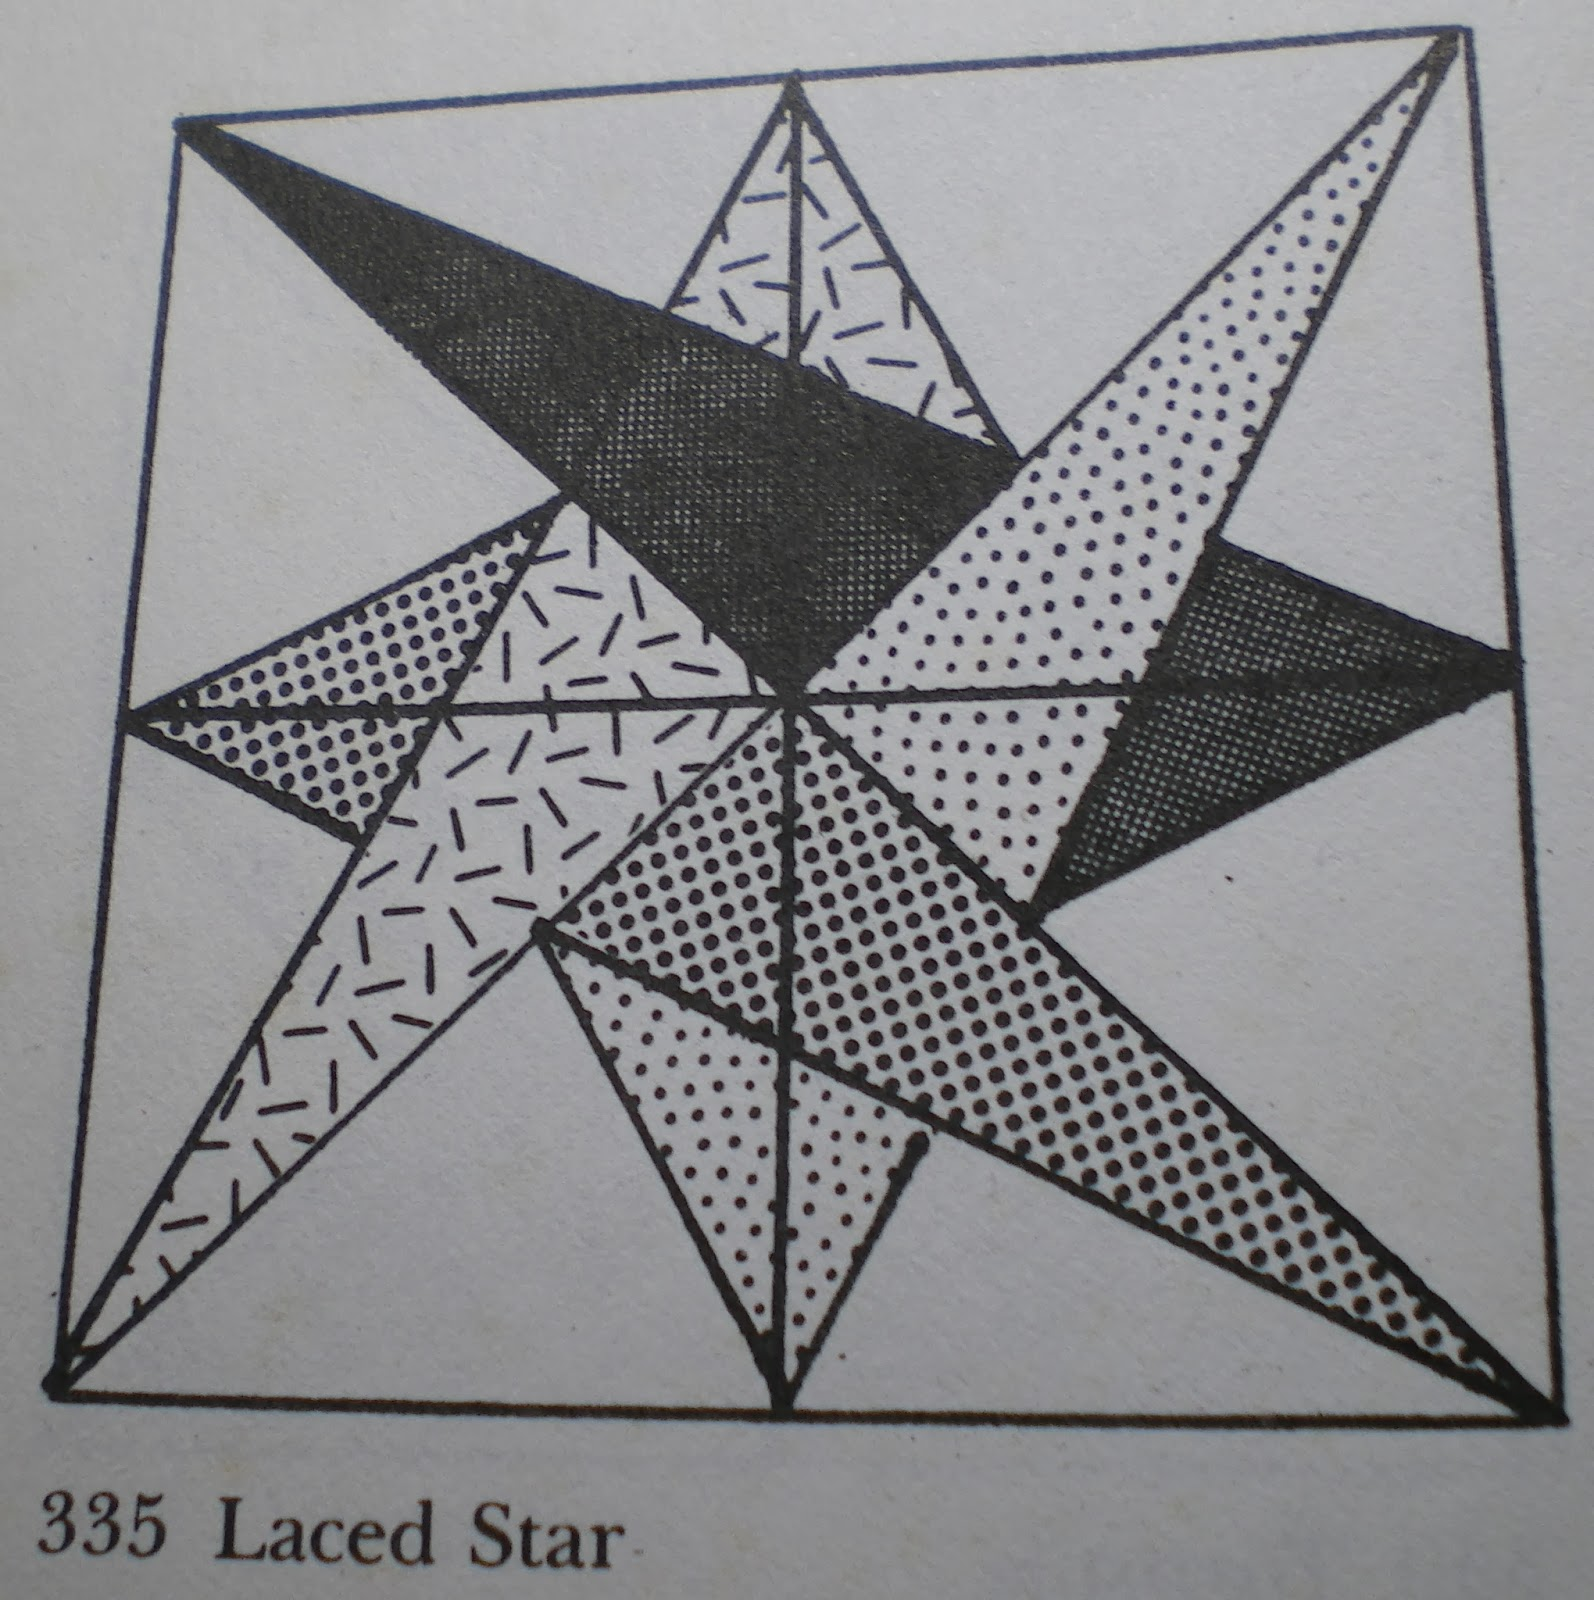 Quilt Designs by Candace: The Laced Star Block